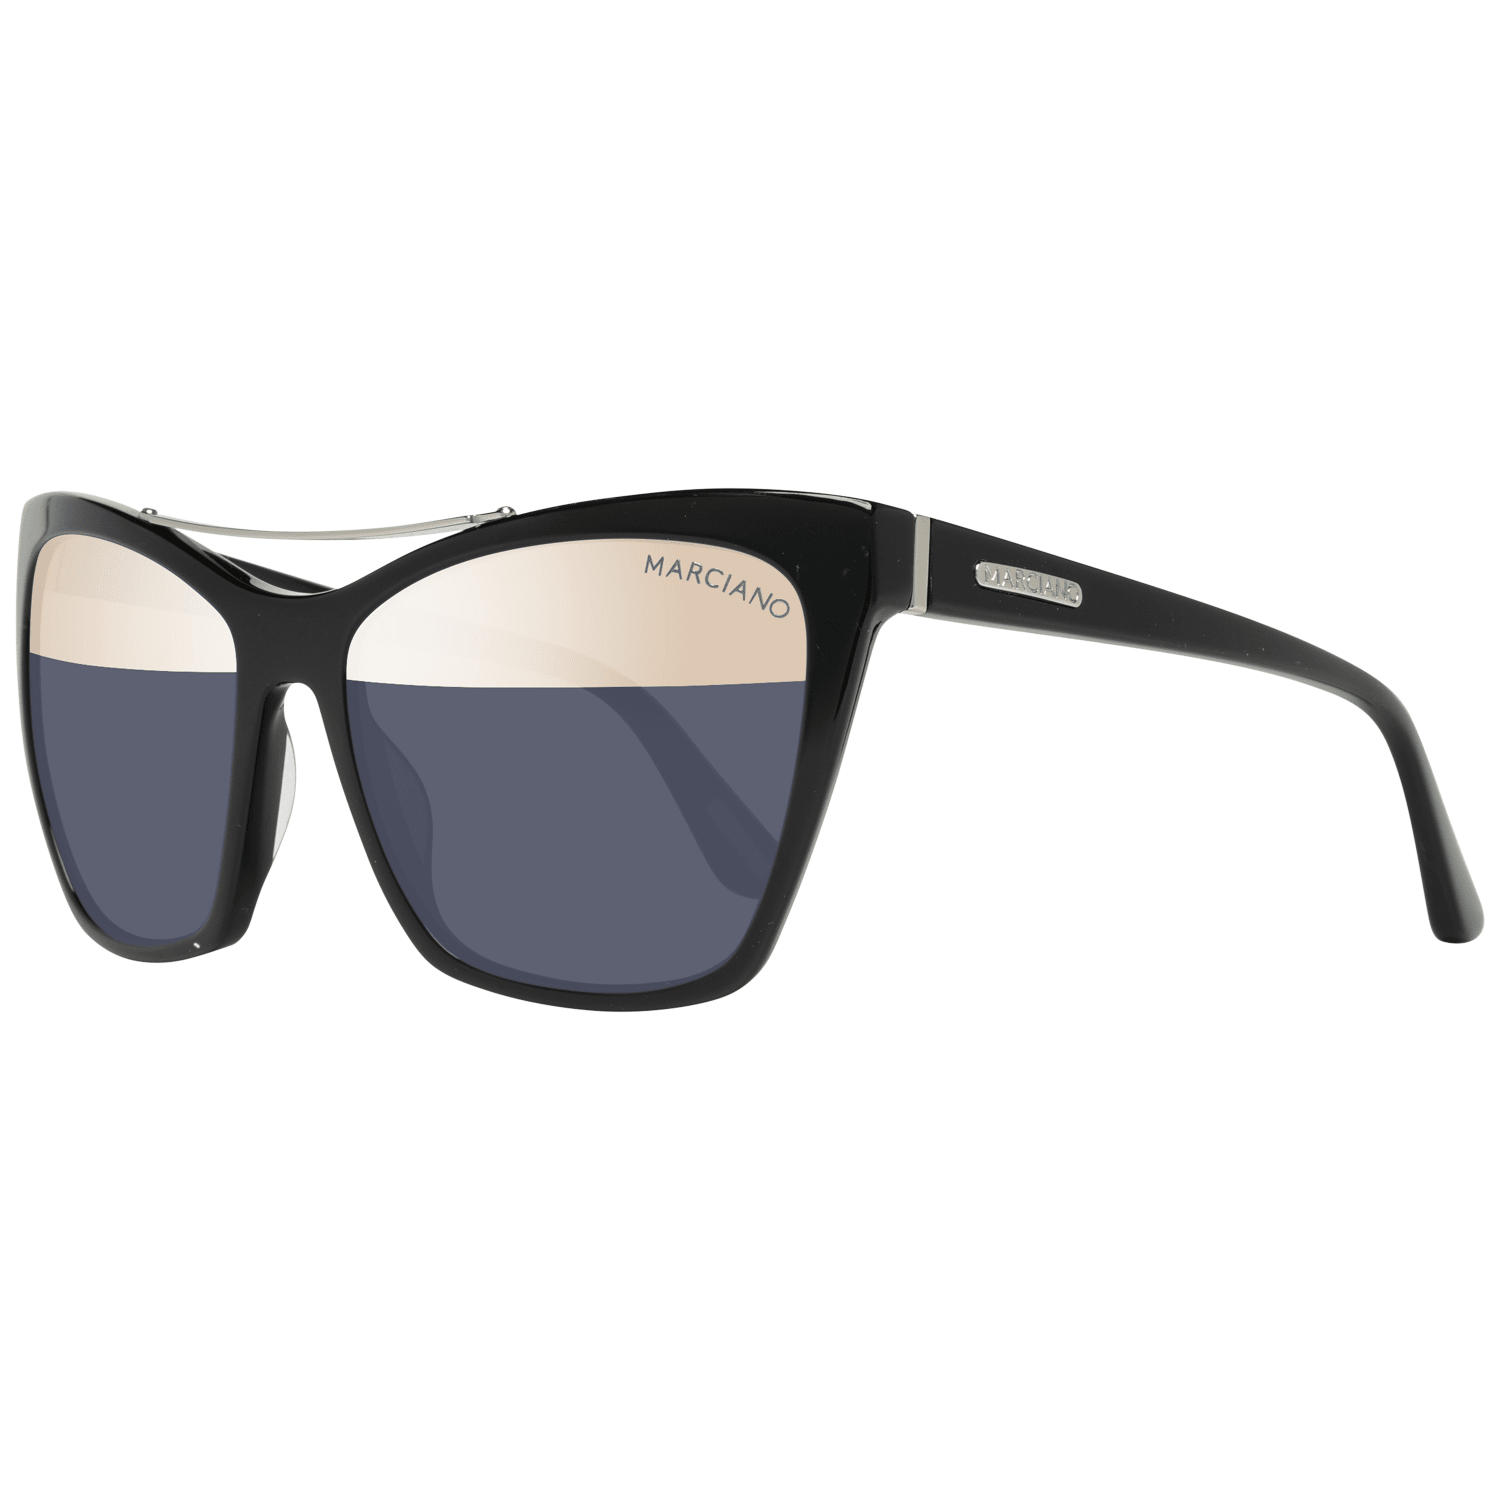 Guess By Marciano Women's Sunglasses Black GM0753 5701B